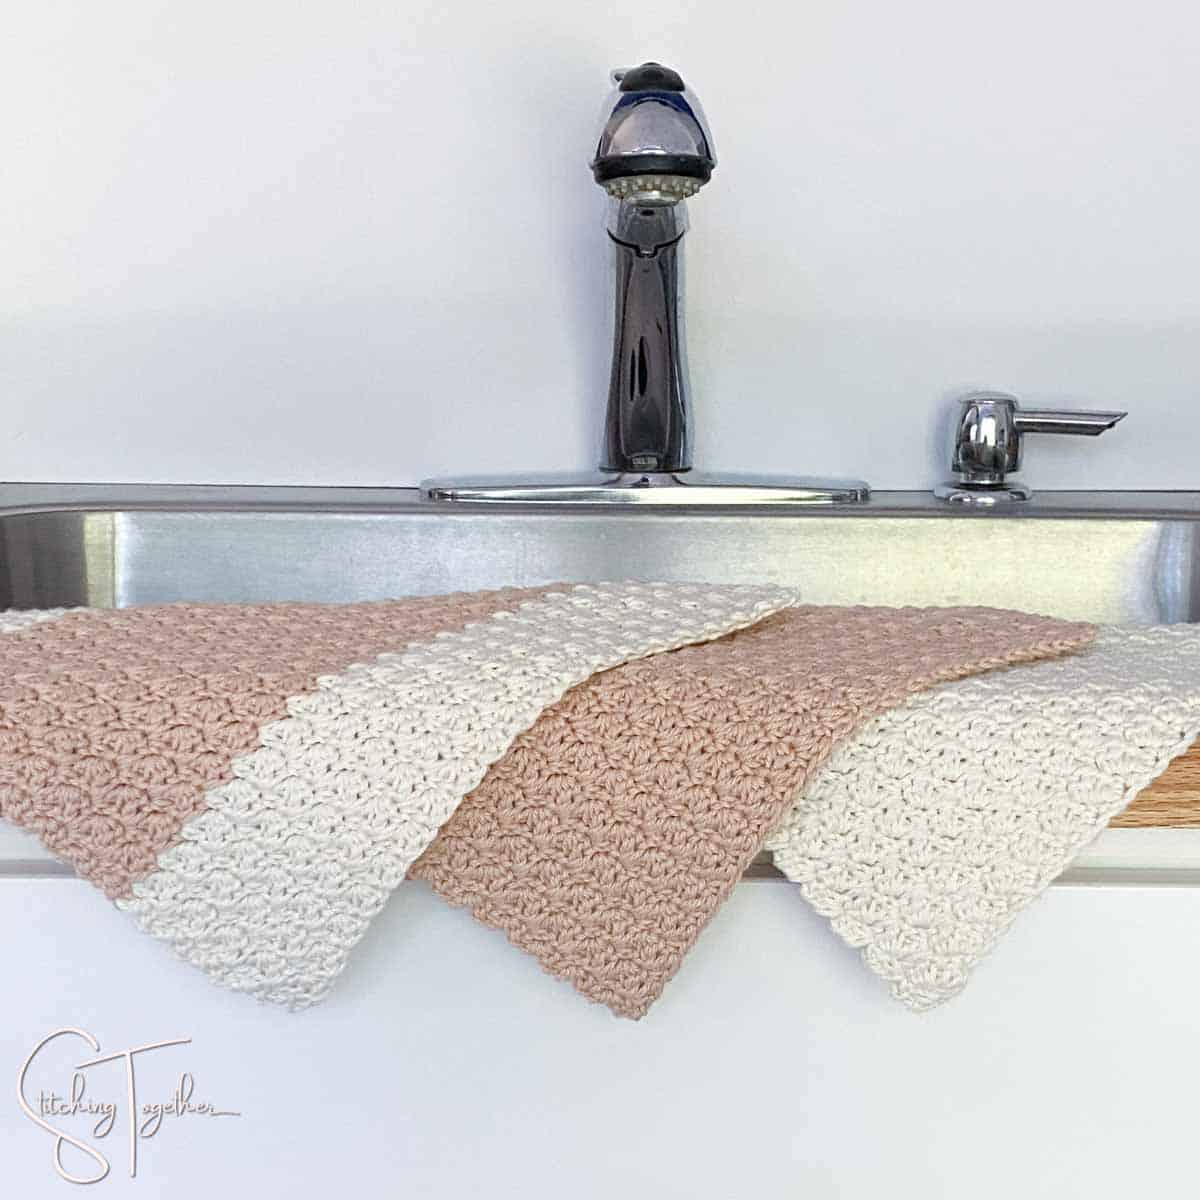 3 crochet dishcloths draped over the side of a sink